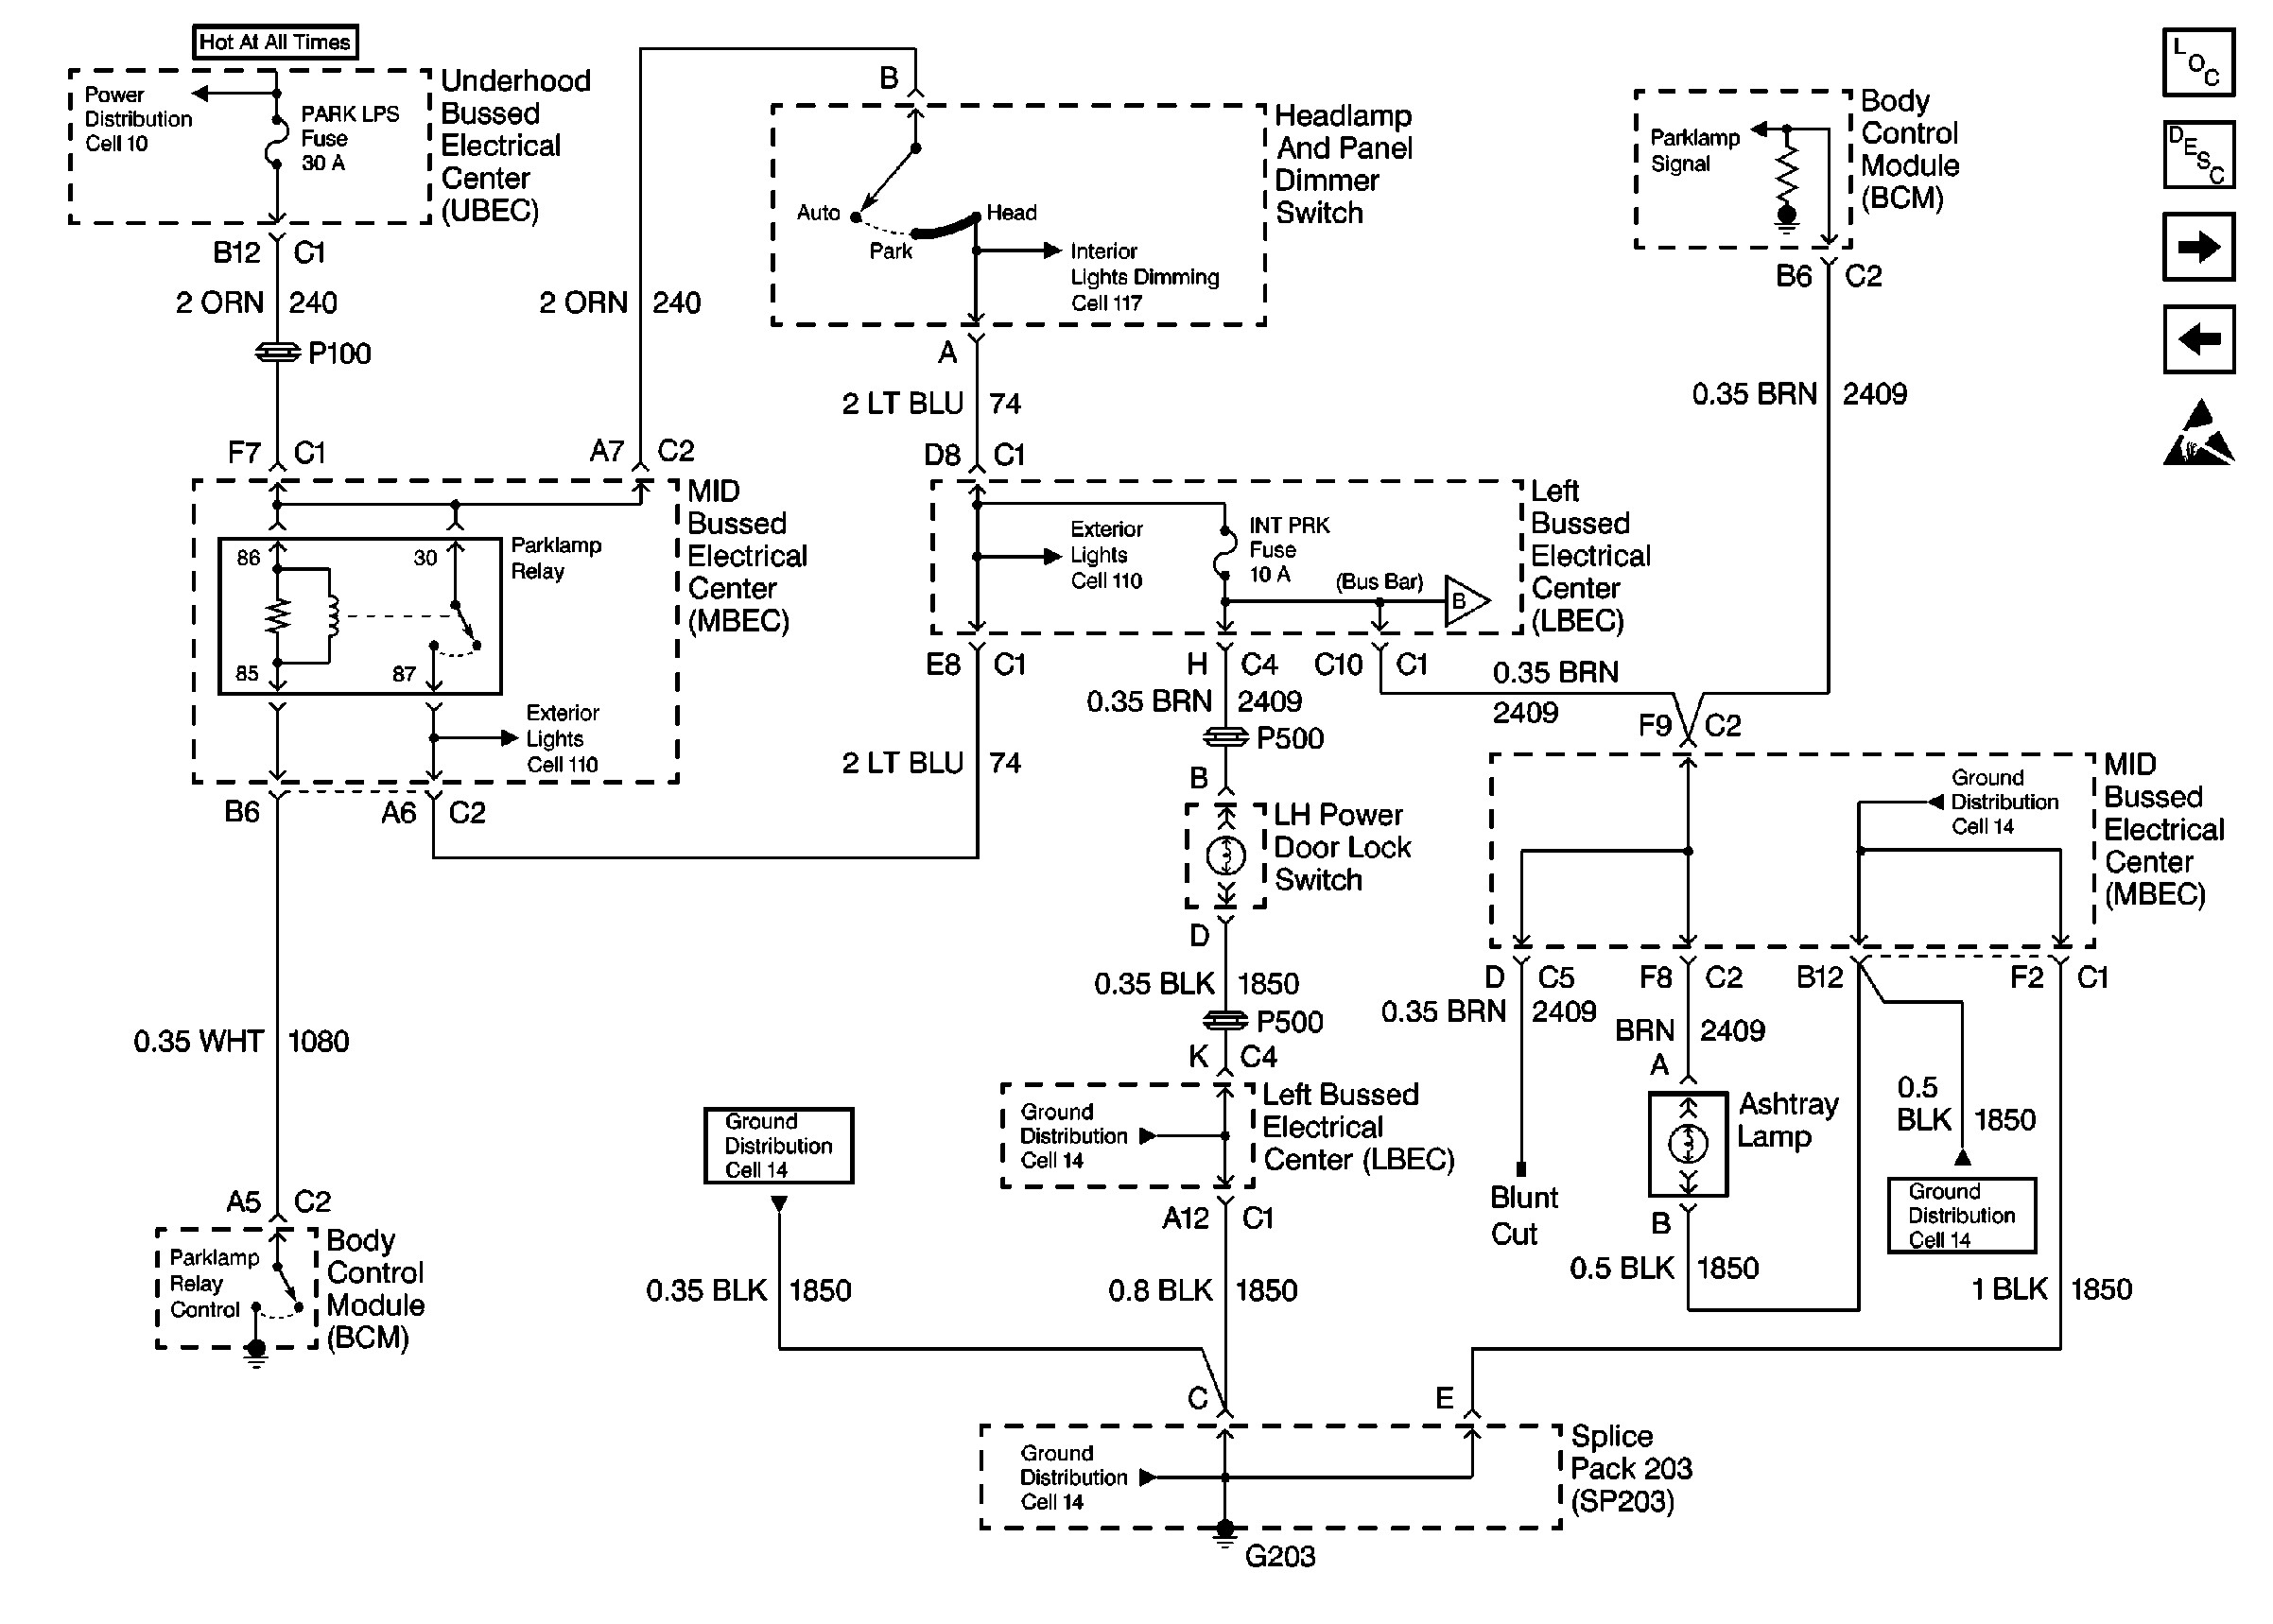 2007 Bmw Bcm Connections Diagram Gm Body Control Module Wiring Diagram Free Wiring Diagram Of 2007 Bmw Bcm Connections Diagram